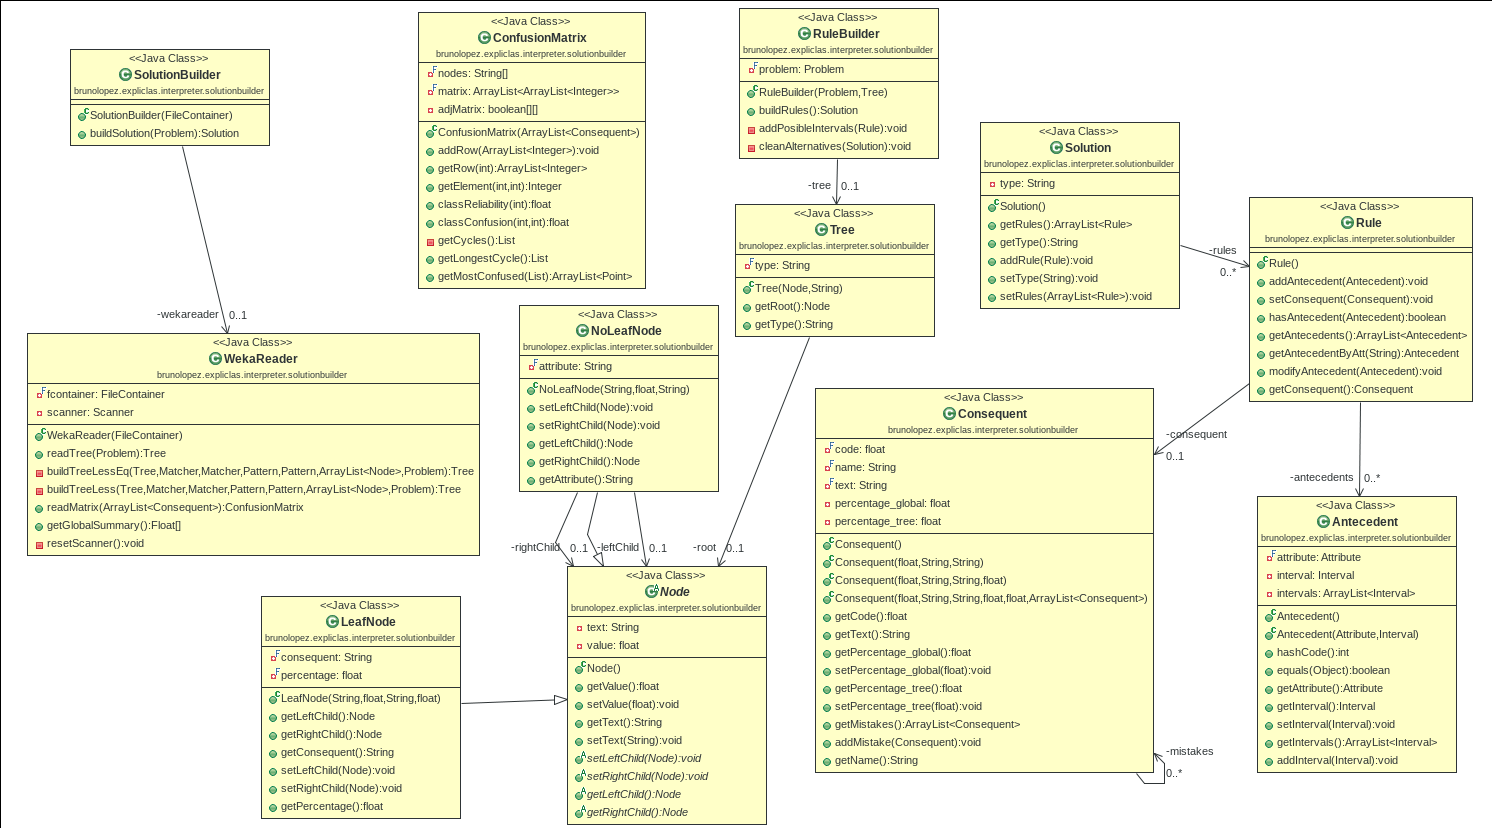 documentacion/deseno/SolutionBuilderDiagram.png